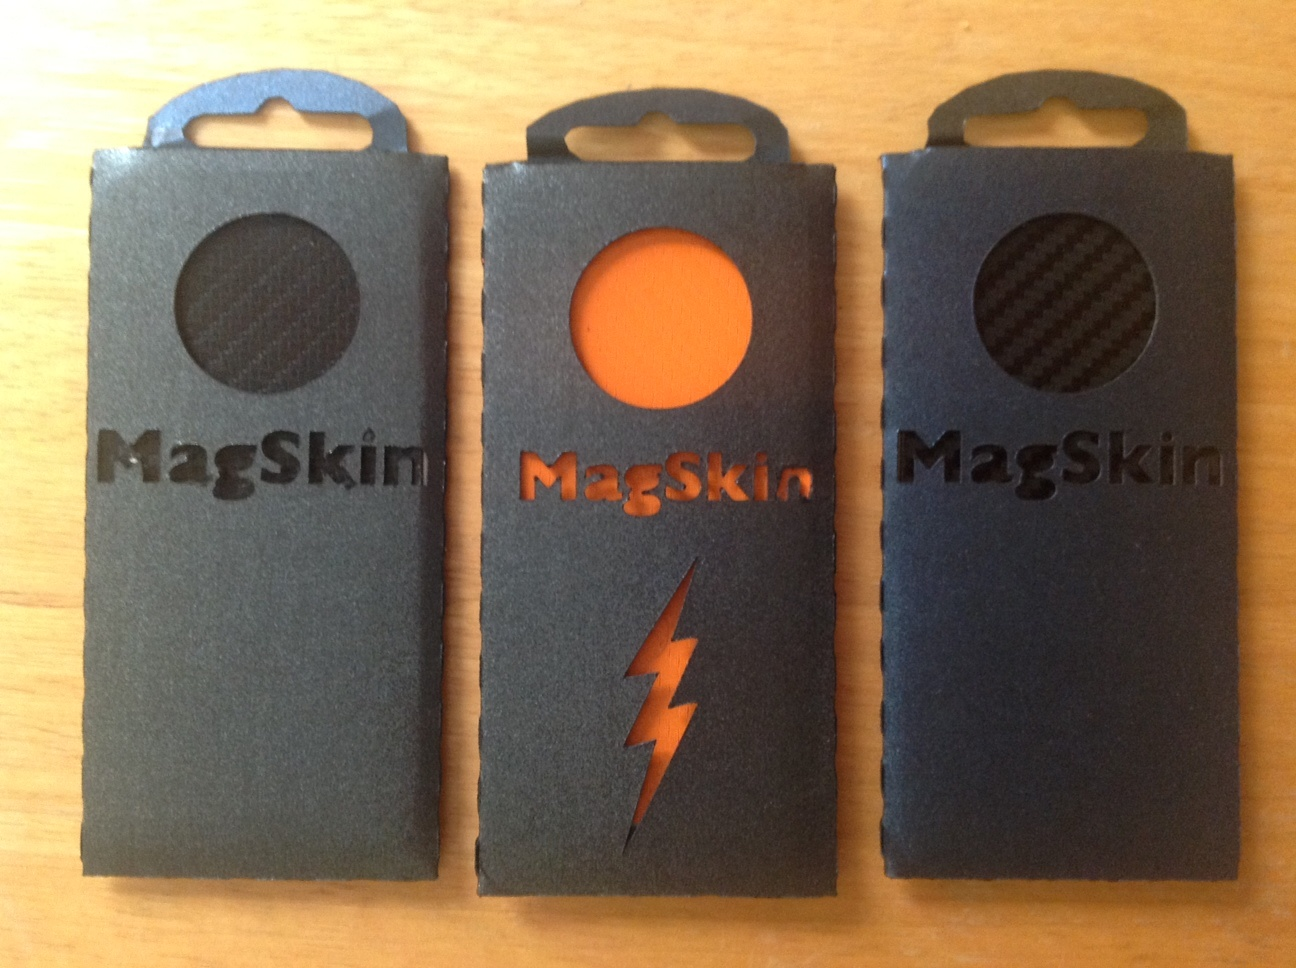 Kickstarted: Like MagSkin On Facebook And Win!